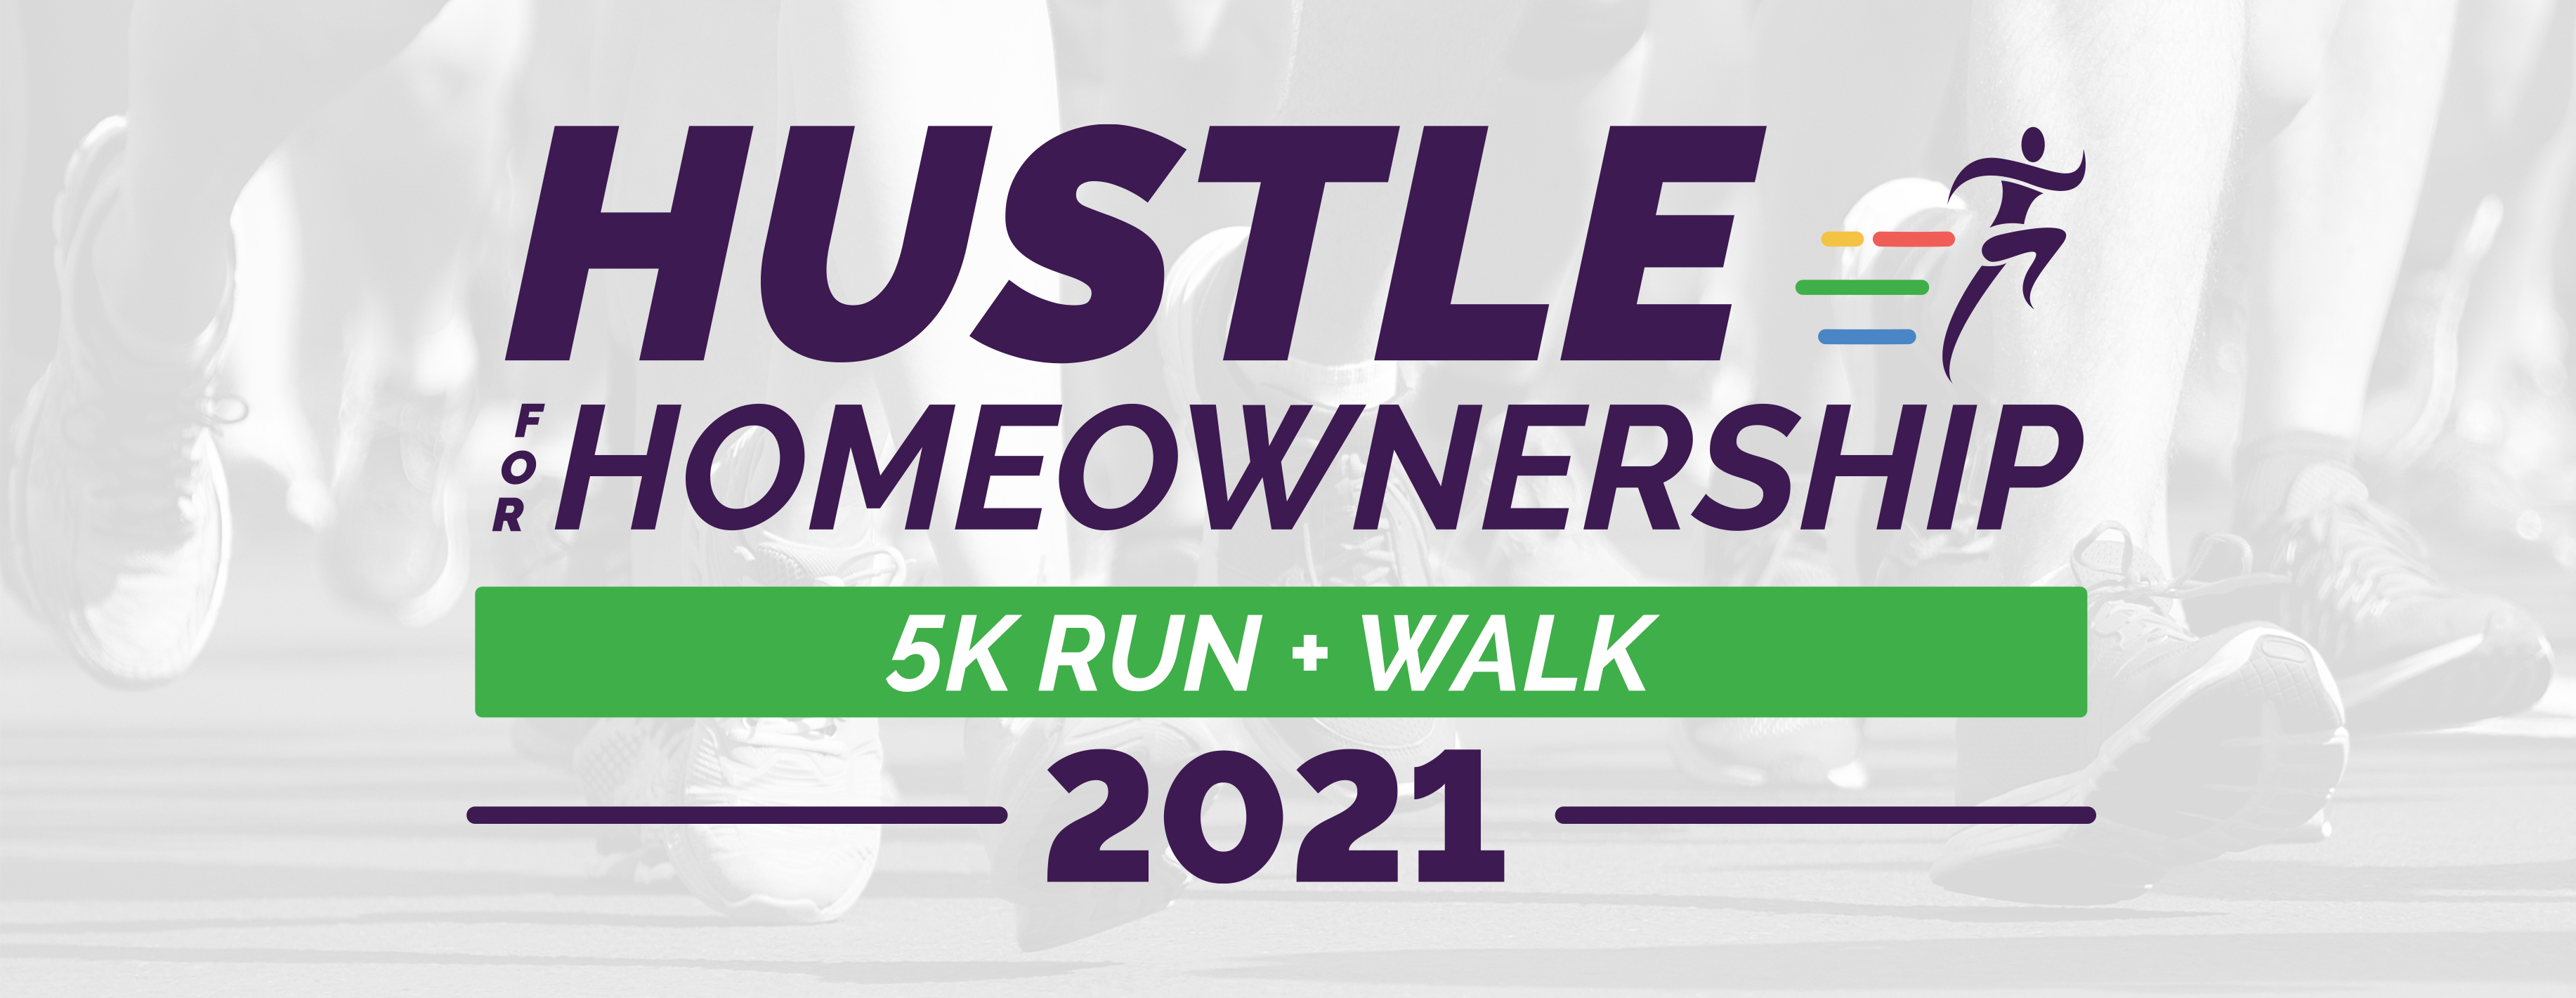 Hustle for Homeownership 2021